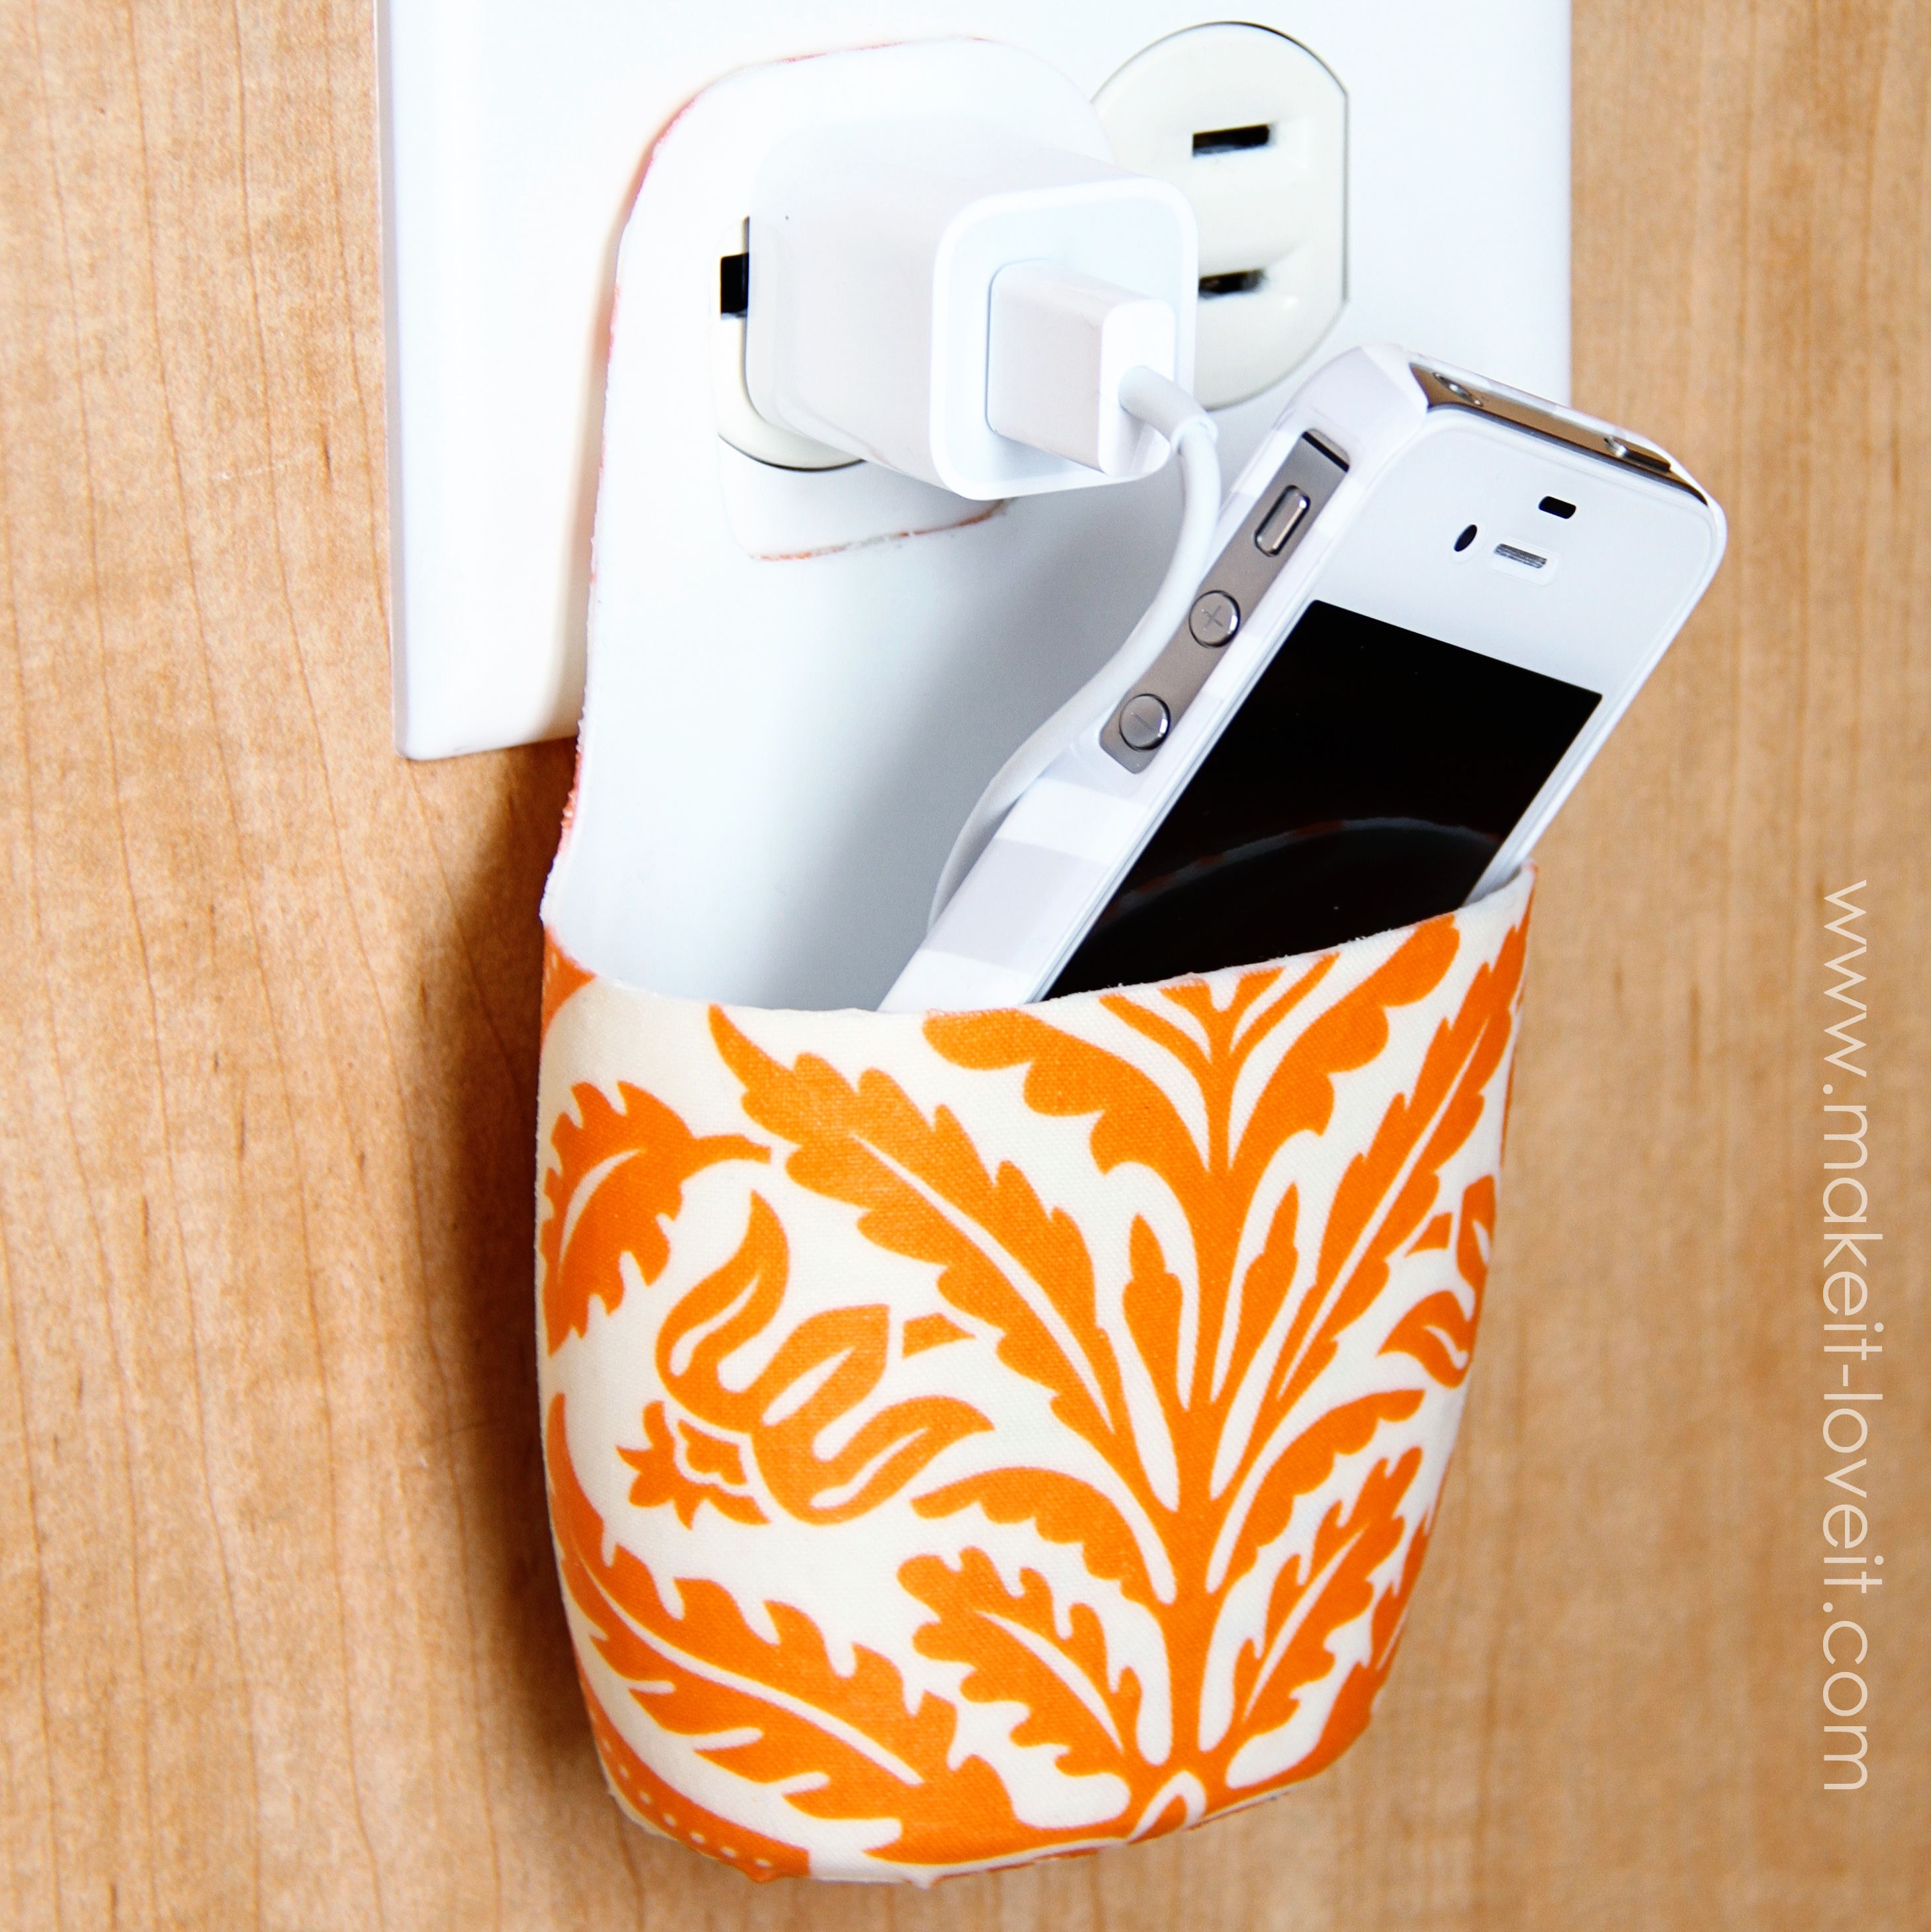 Holder for Charging Cell Phone (made from lotion bottle)